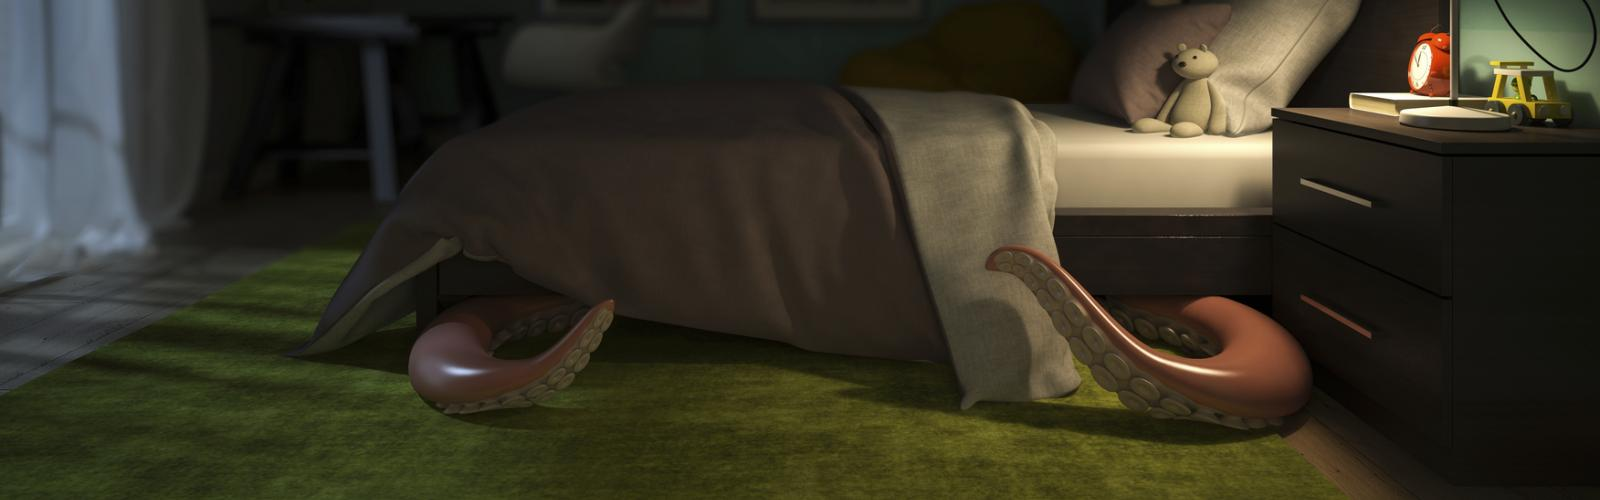 Octopus hiding under the bed